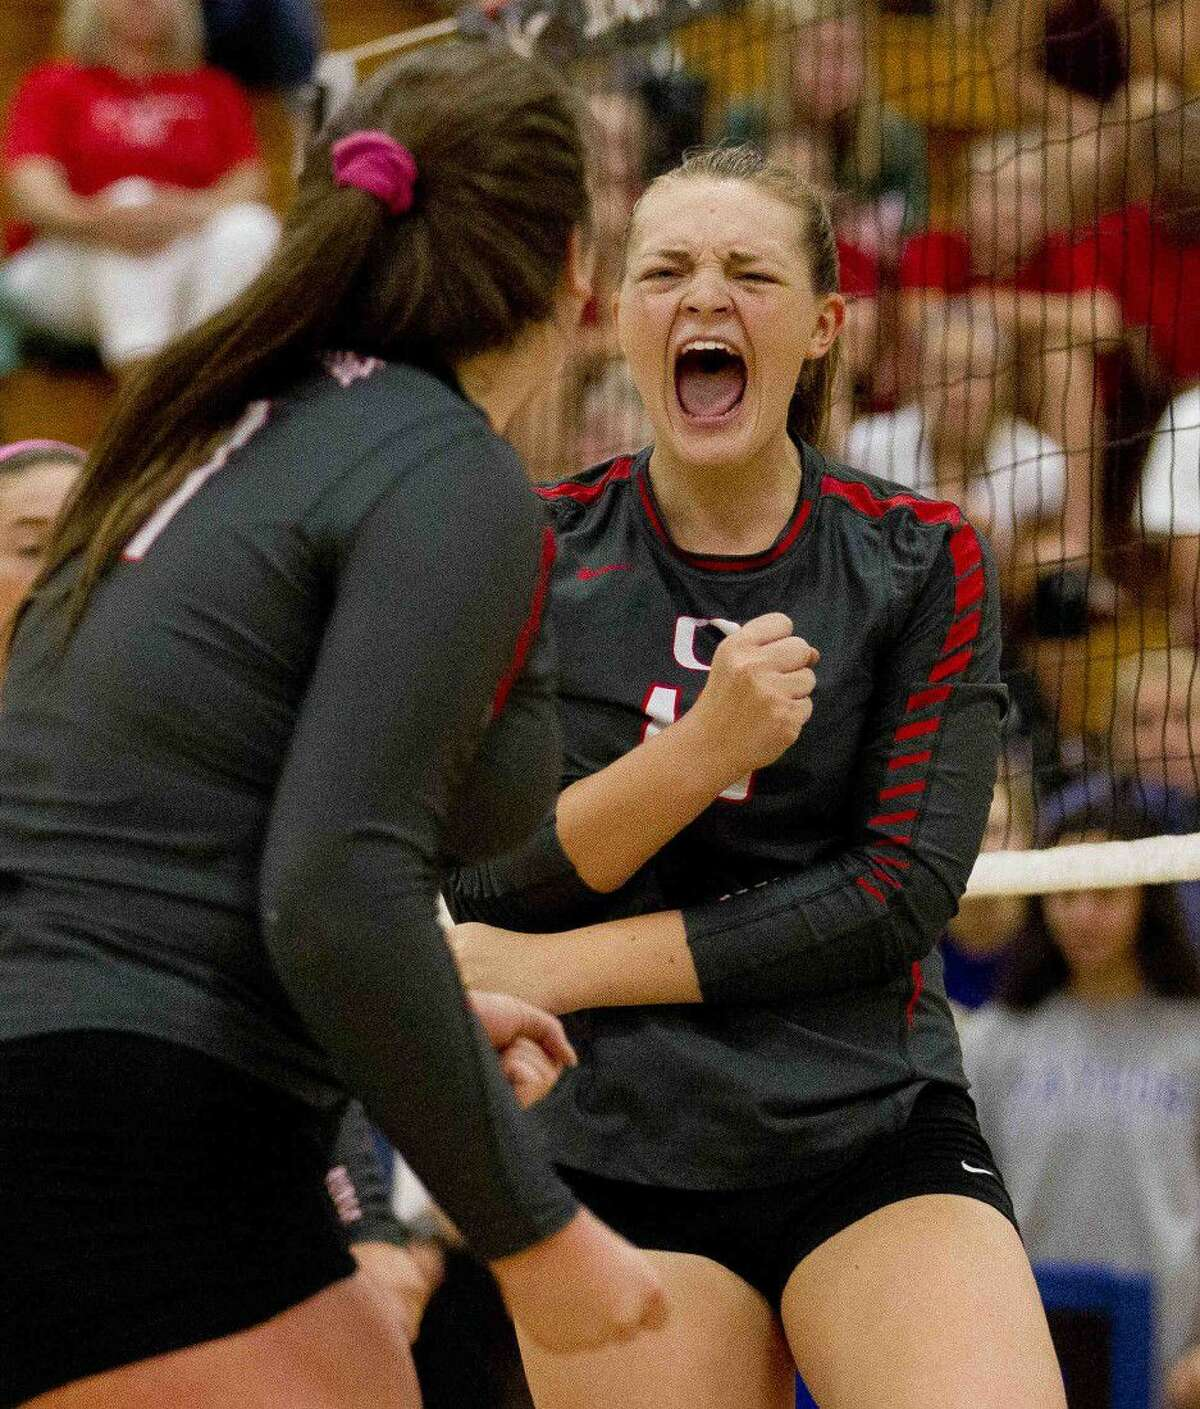 Oak Ridge's Hailey Lohnes celebrates a point in the first set of a gold bracket semifinal volleyball match during the Katy/Cy-Fair Nike Invitational. Go to HCNpics.com to purchase this photo and others like it.